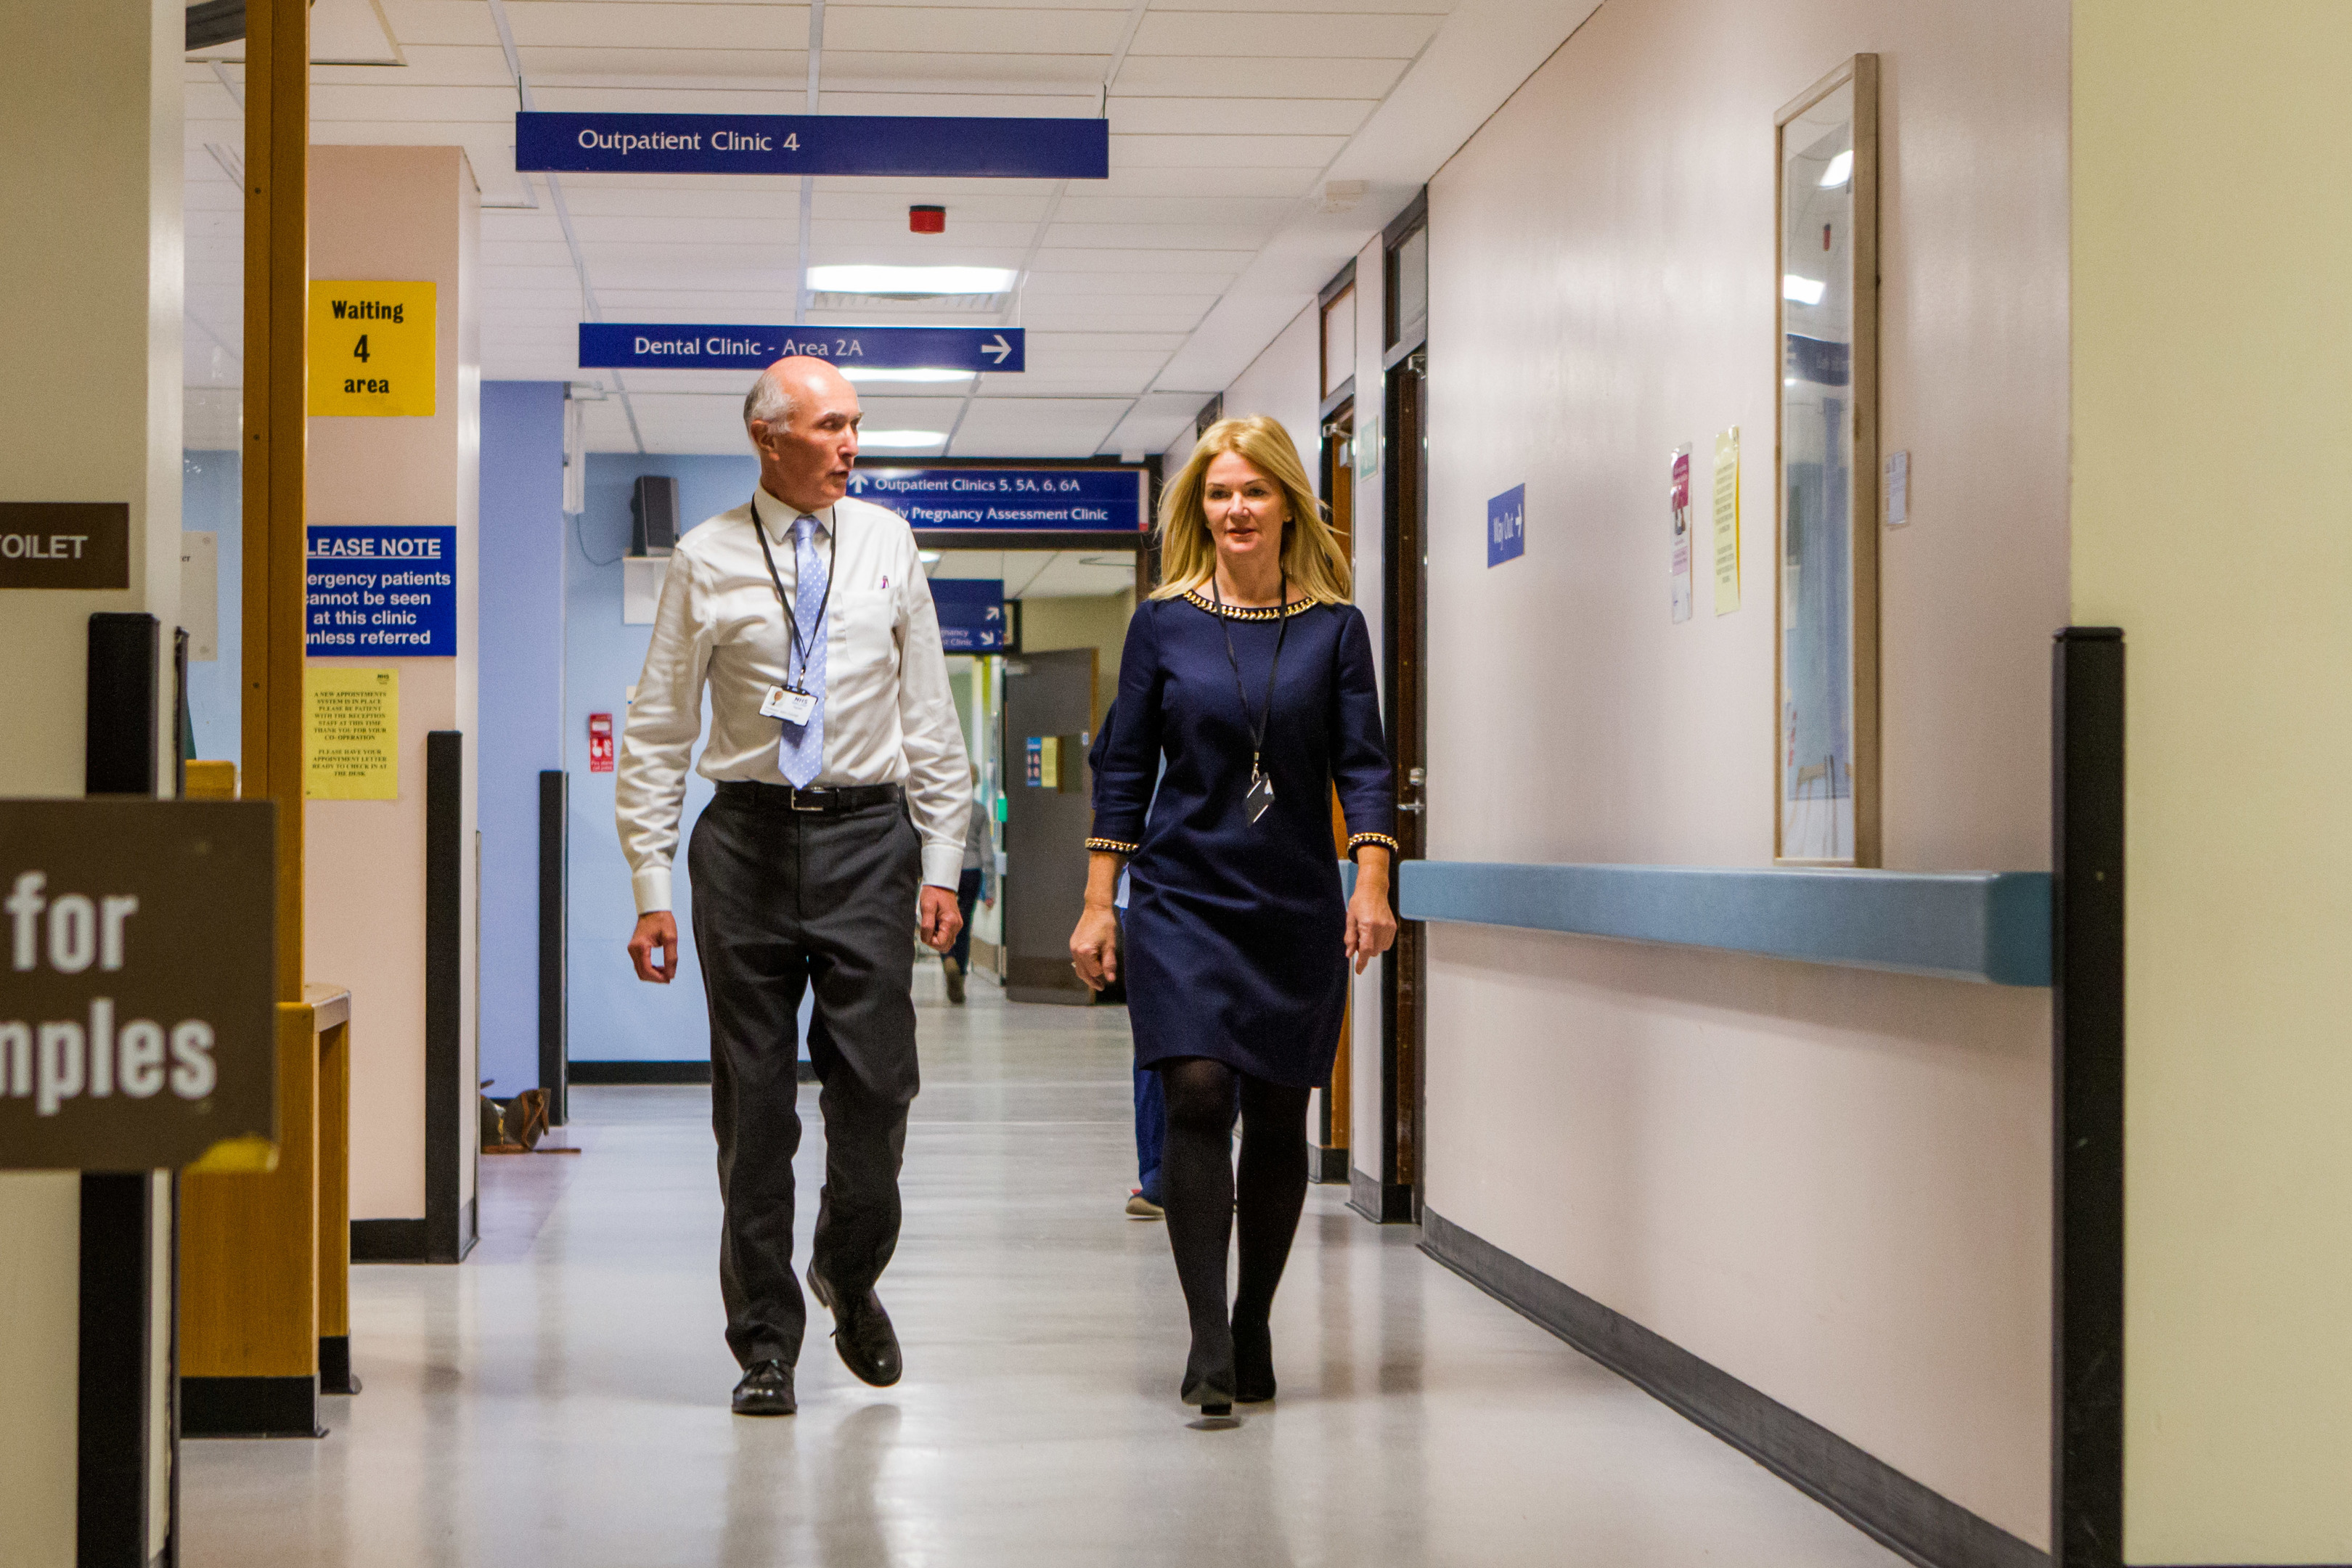 NHS Tayside Chairman Professor John Connell and NHS Tayside Chief Executive Lesley McLay at Ninewells Hospital.